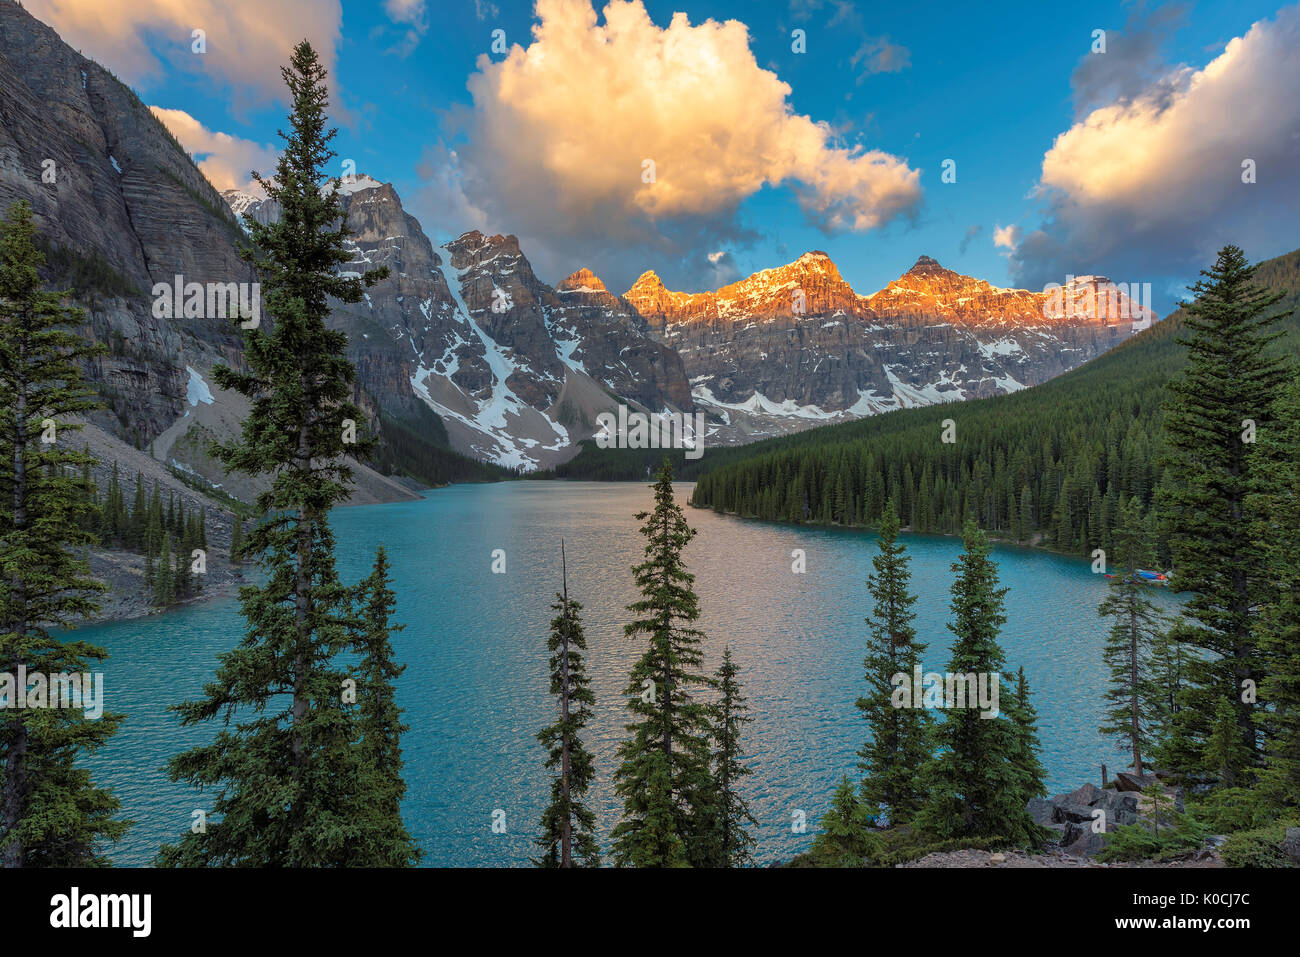 Banff national park, Sunrise at Moraine lake - Stock Image